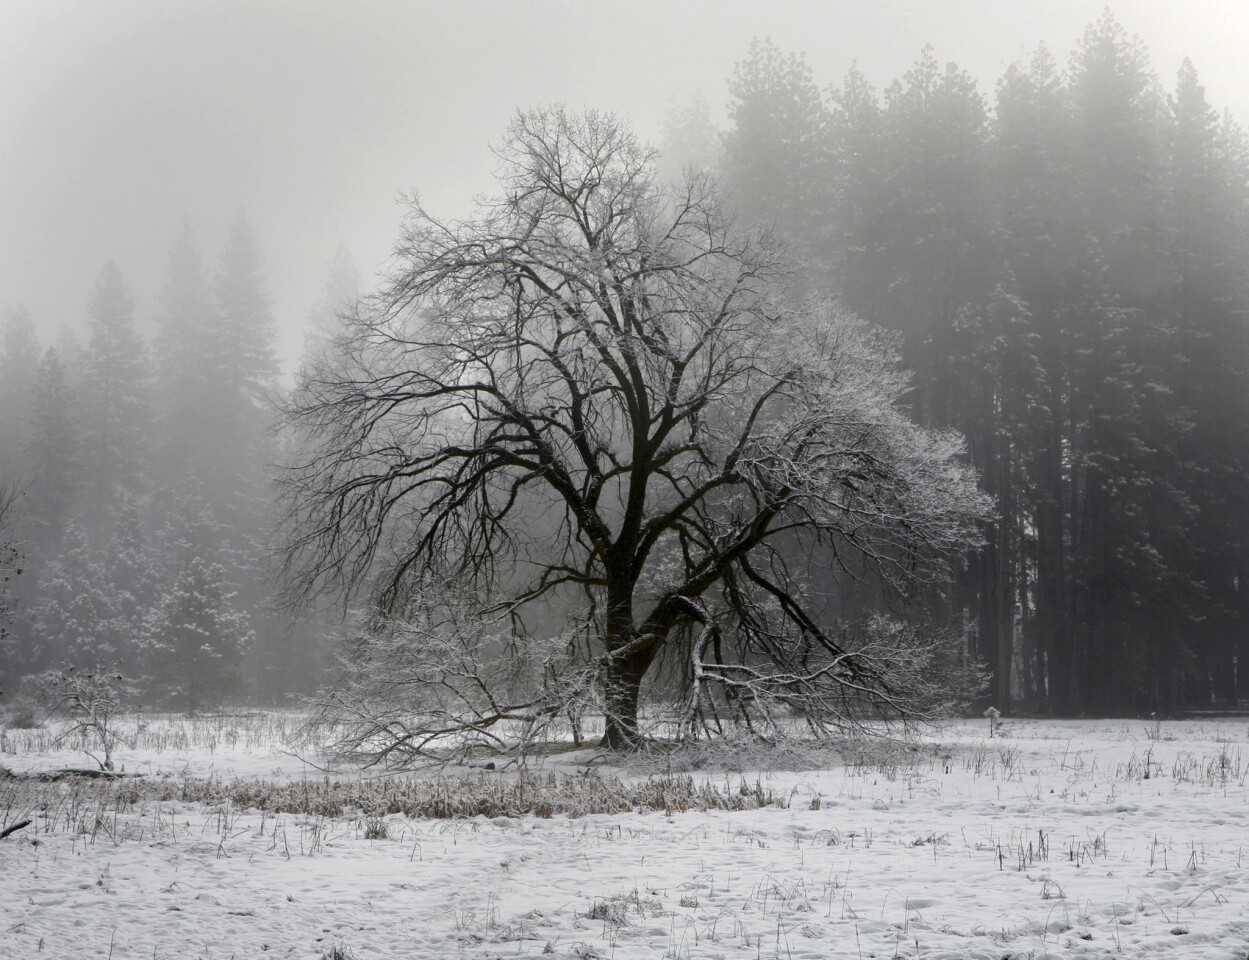 The iconic elm tree in Cook's Meadow in Yosemite Valley is shrouded by fog and fresh snow. Read Mark Boster's story on winter in Yosemite.